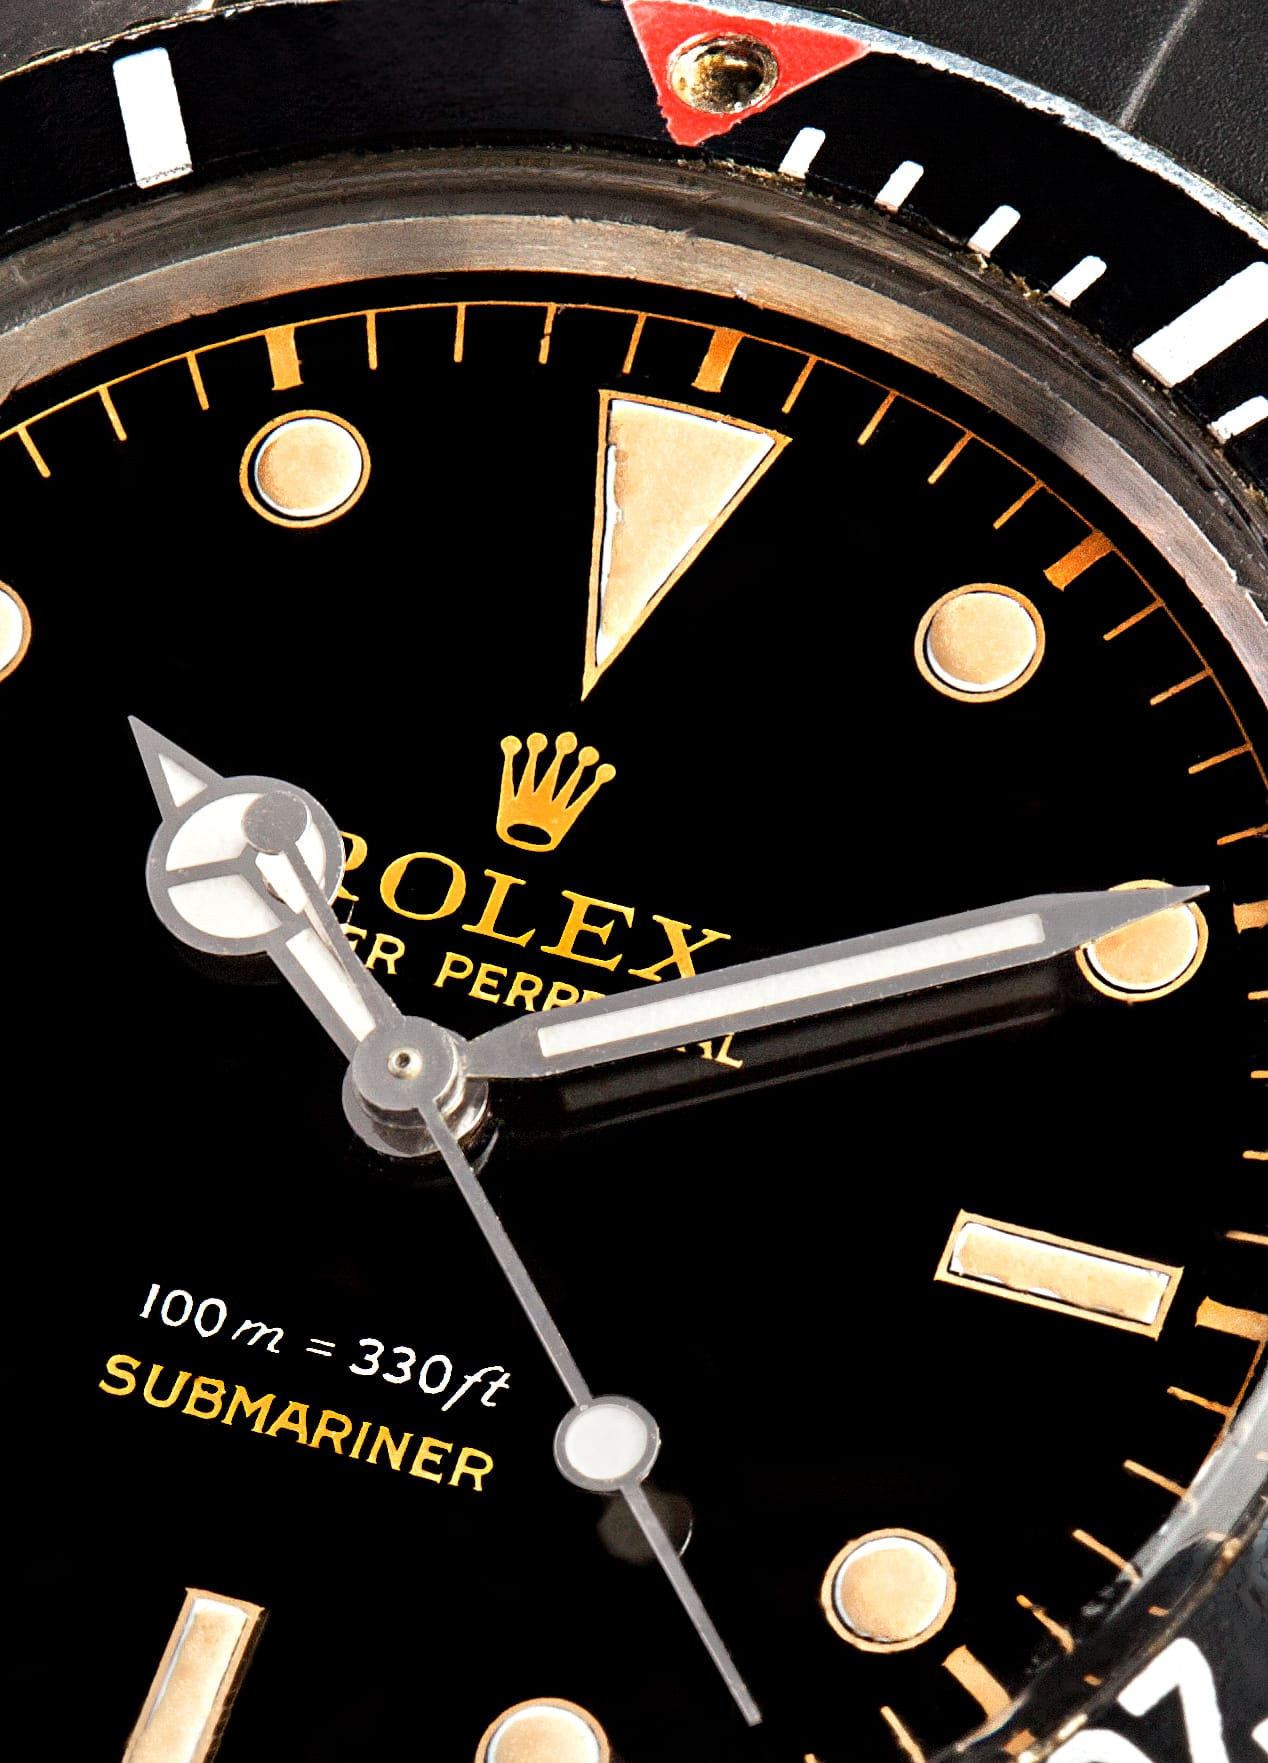 What Was the First Rolex Watch Ever Made?